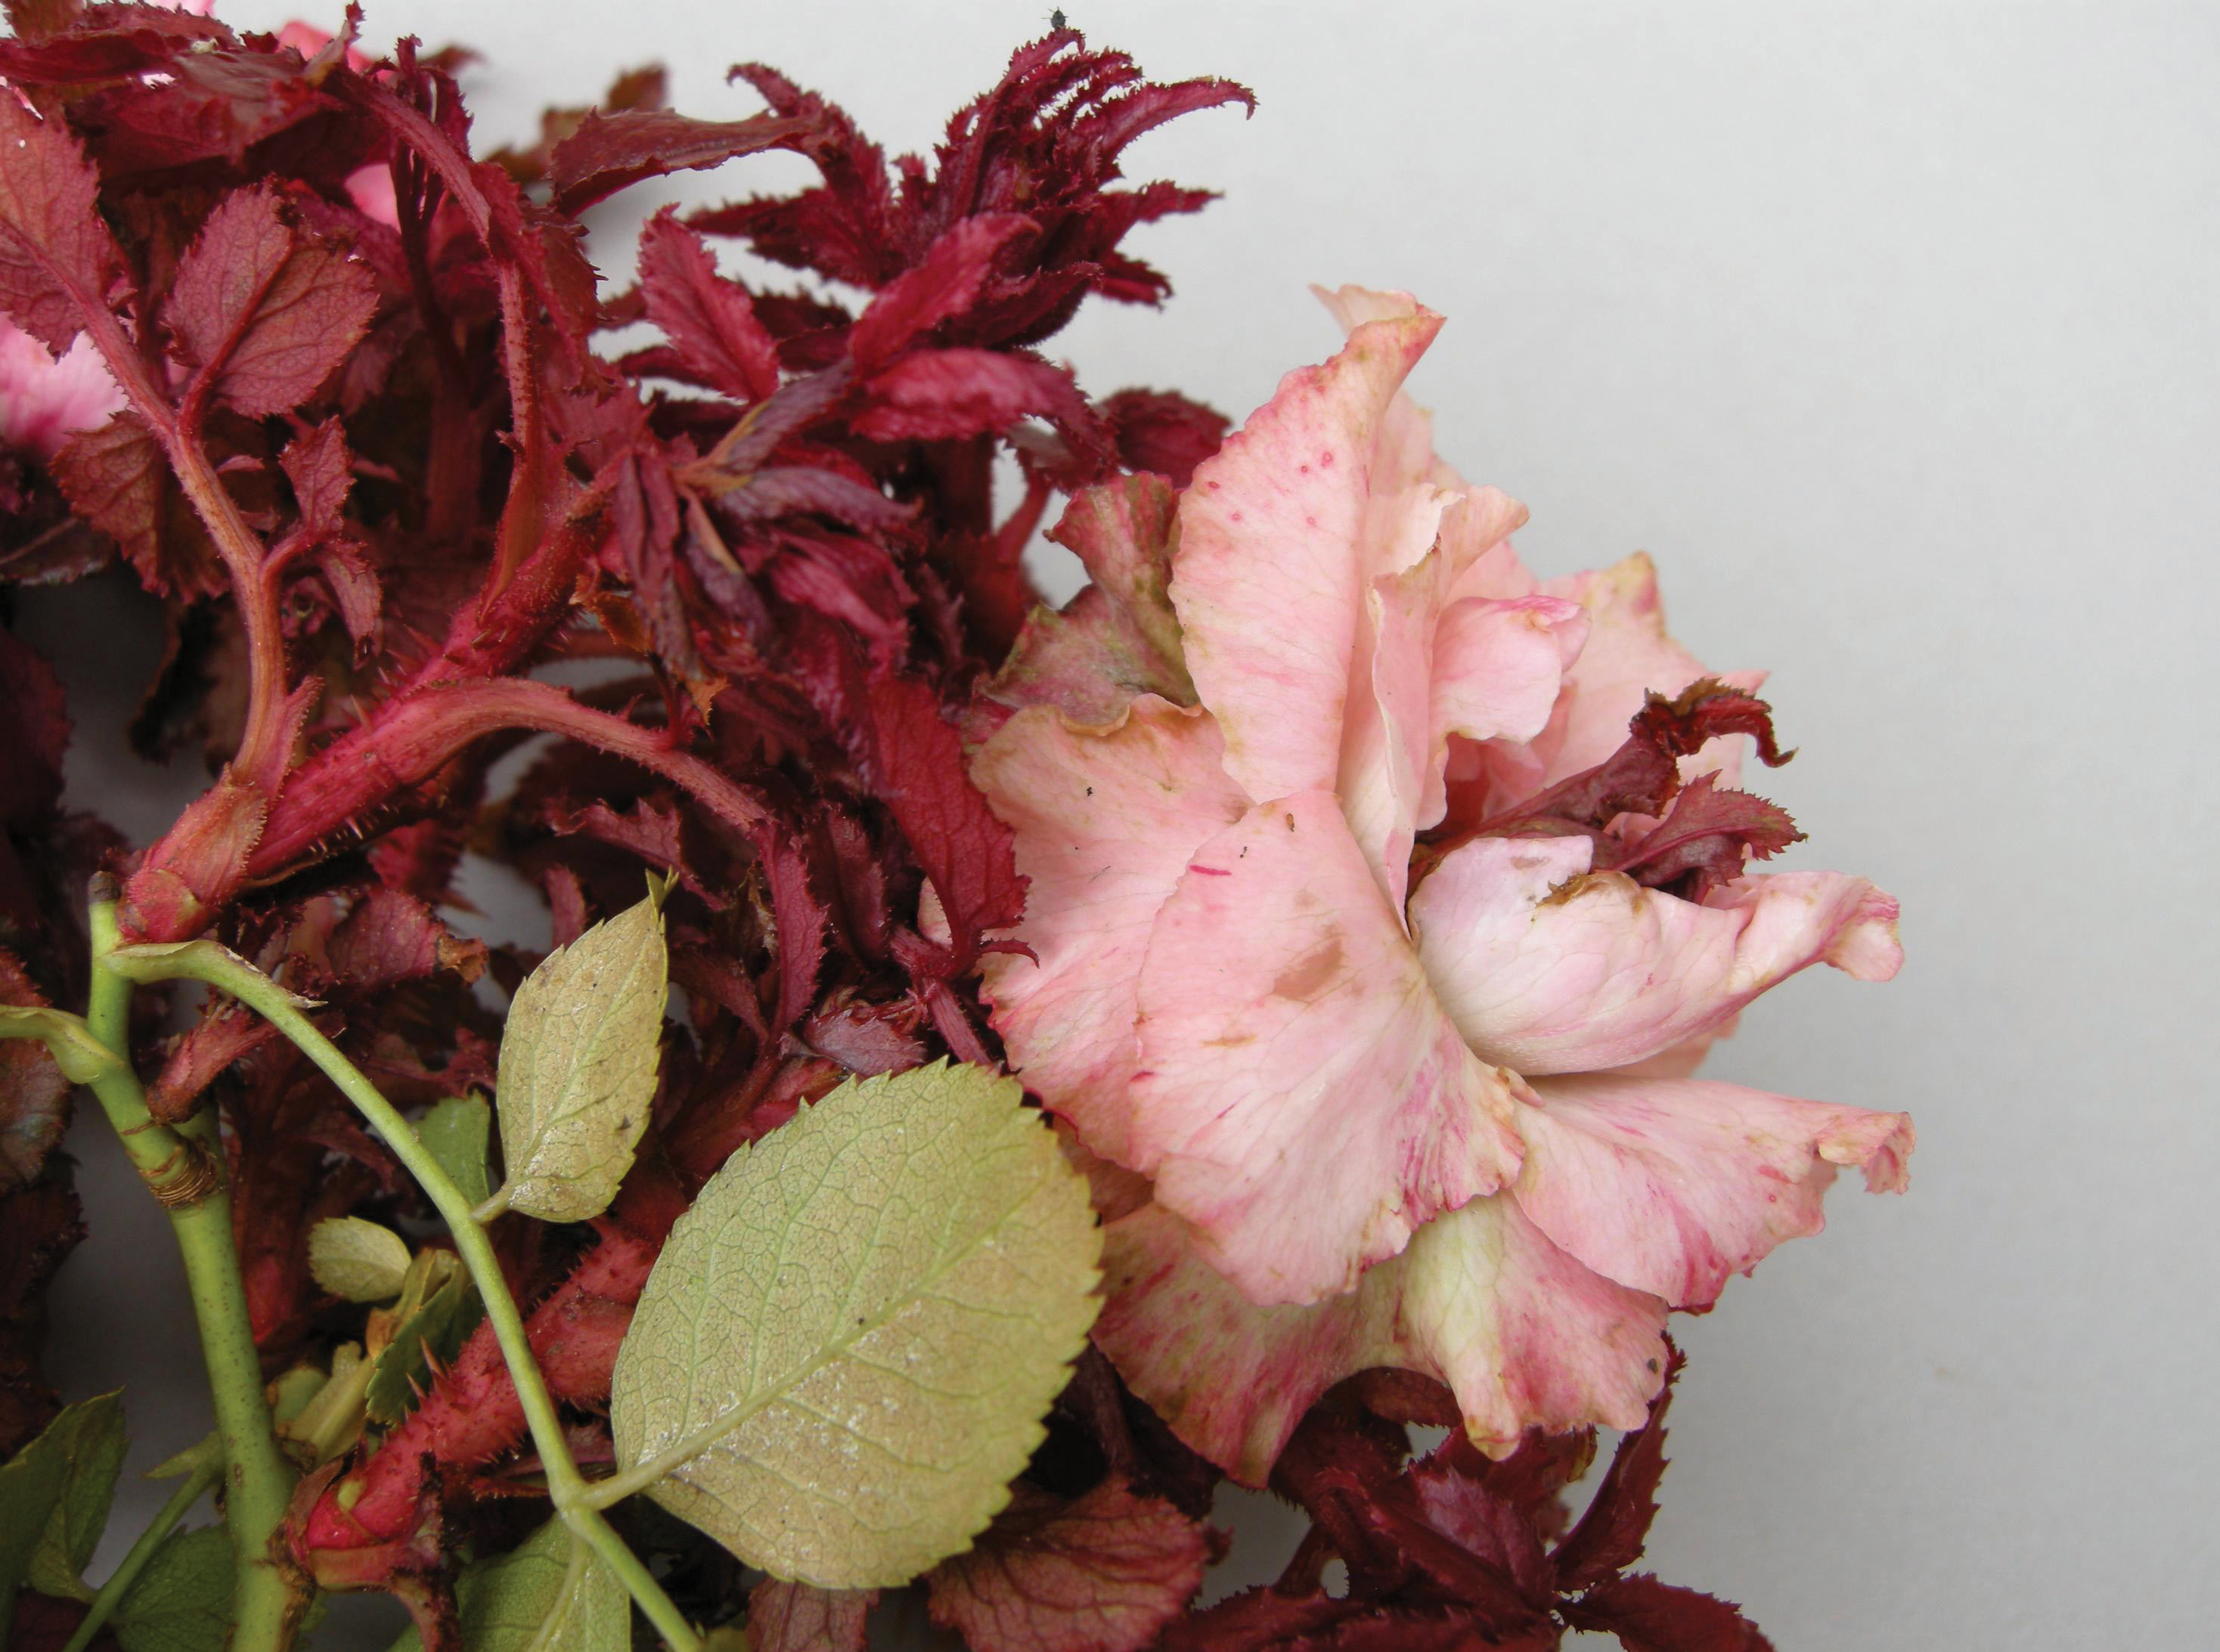 Deadly Rose Rosette Disease Moves Across the Country | State-by ...